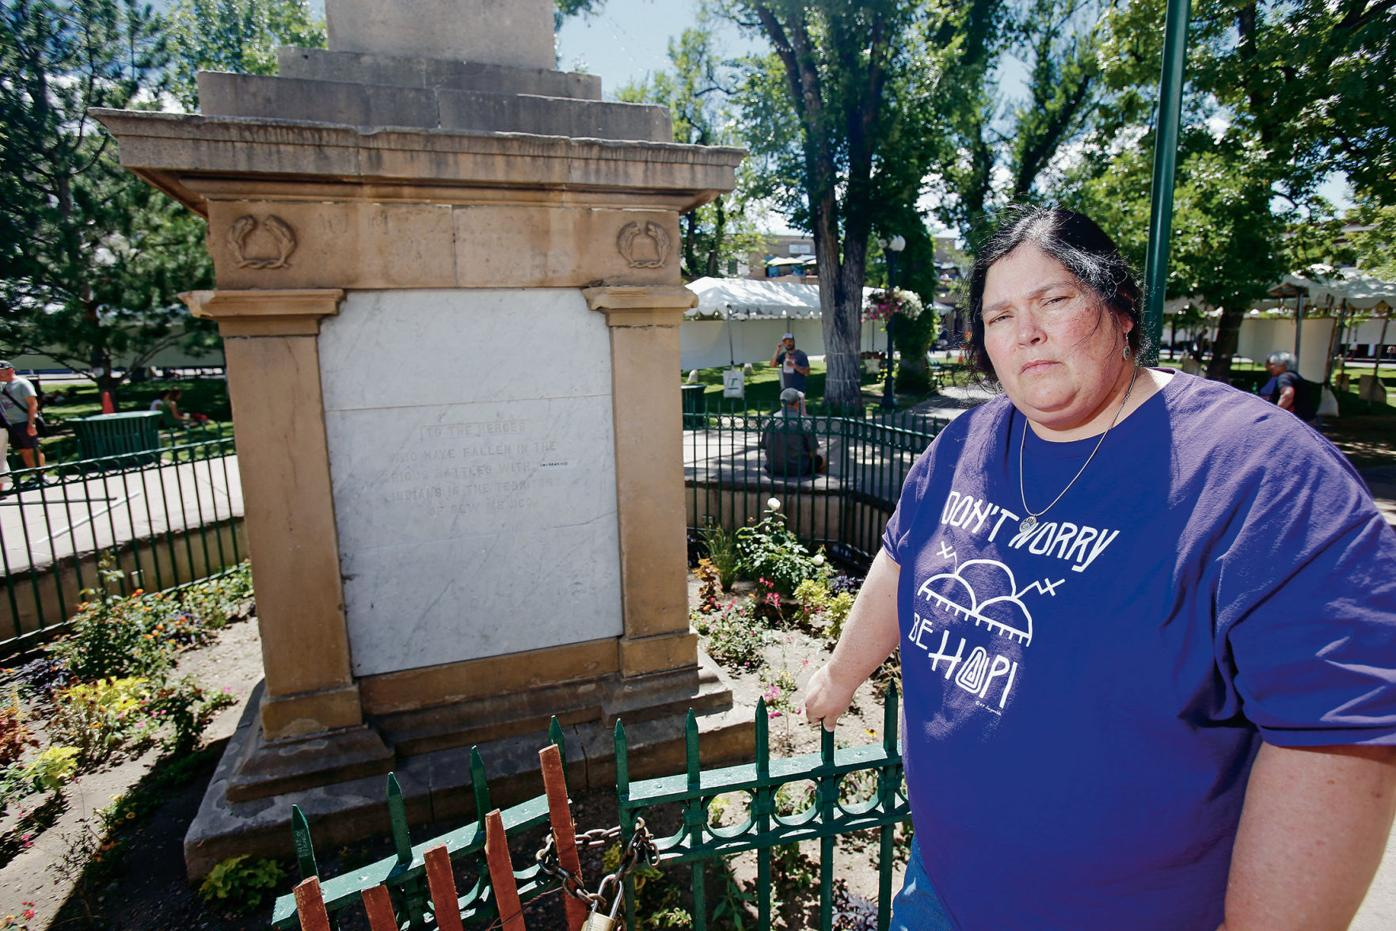 Monuments To History Or Oppression News Taosnews Com